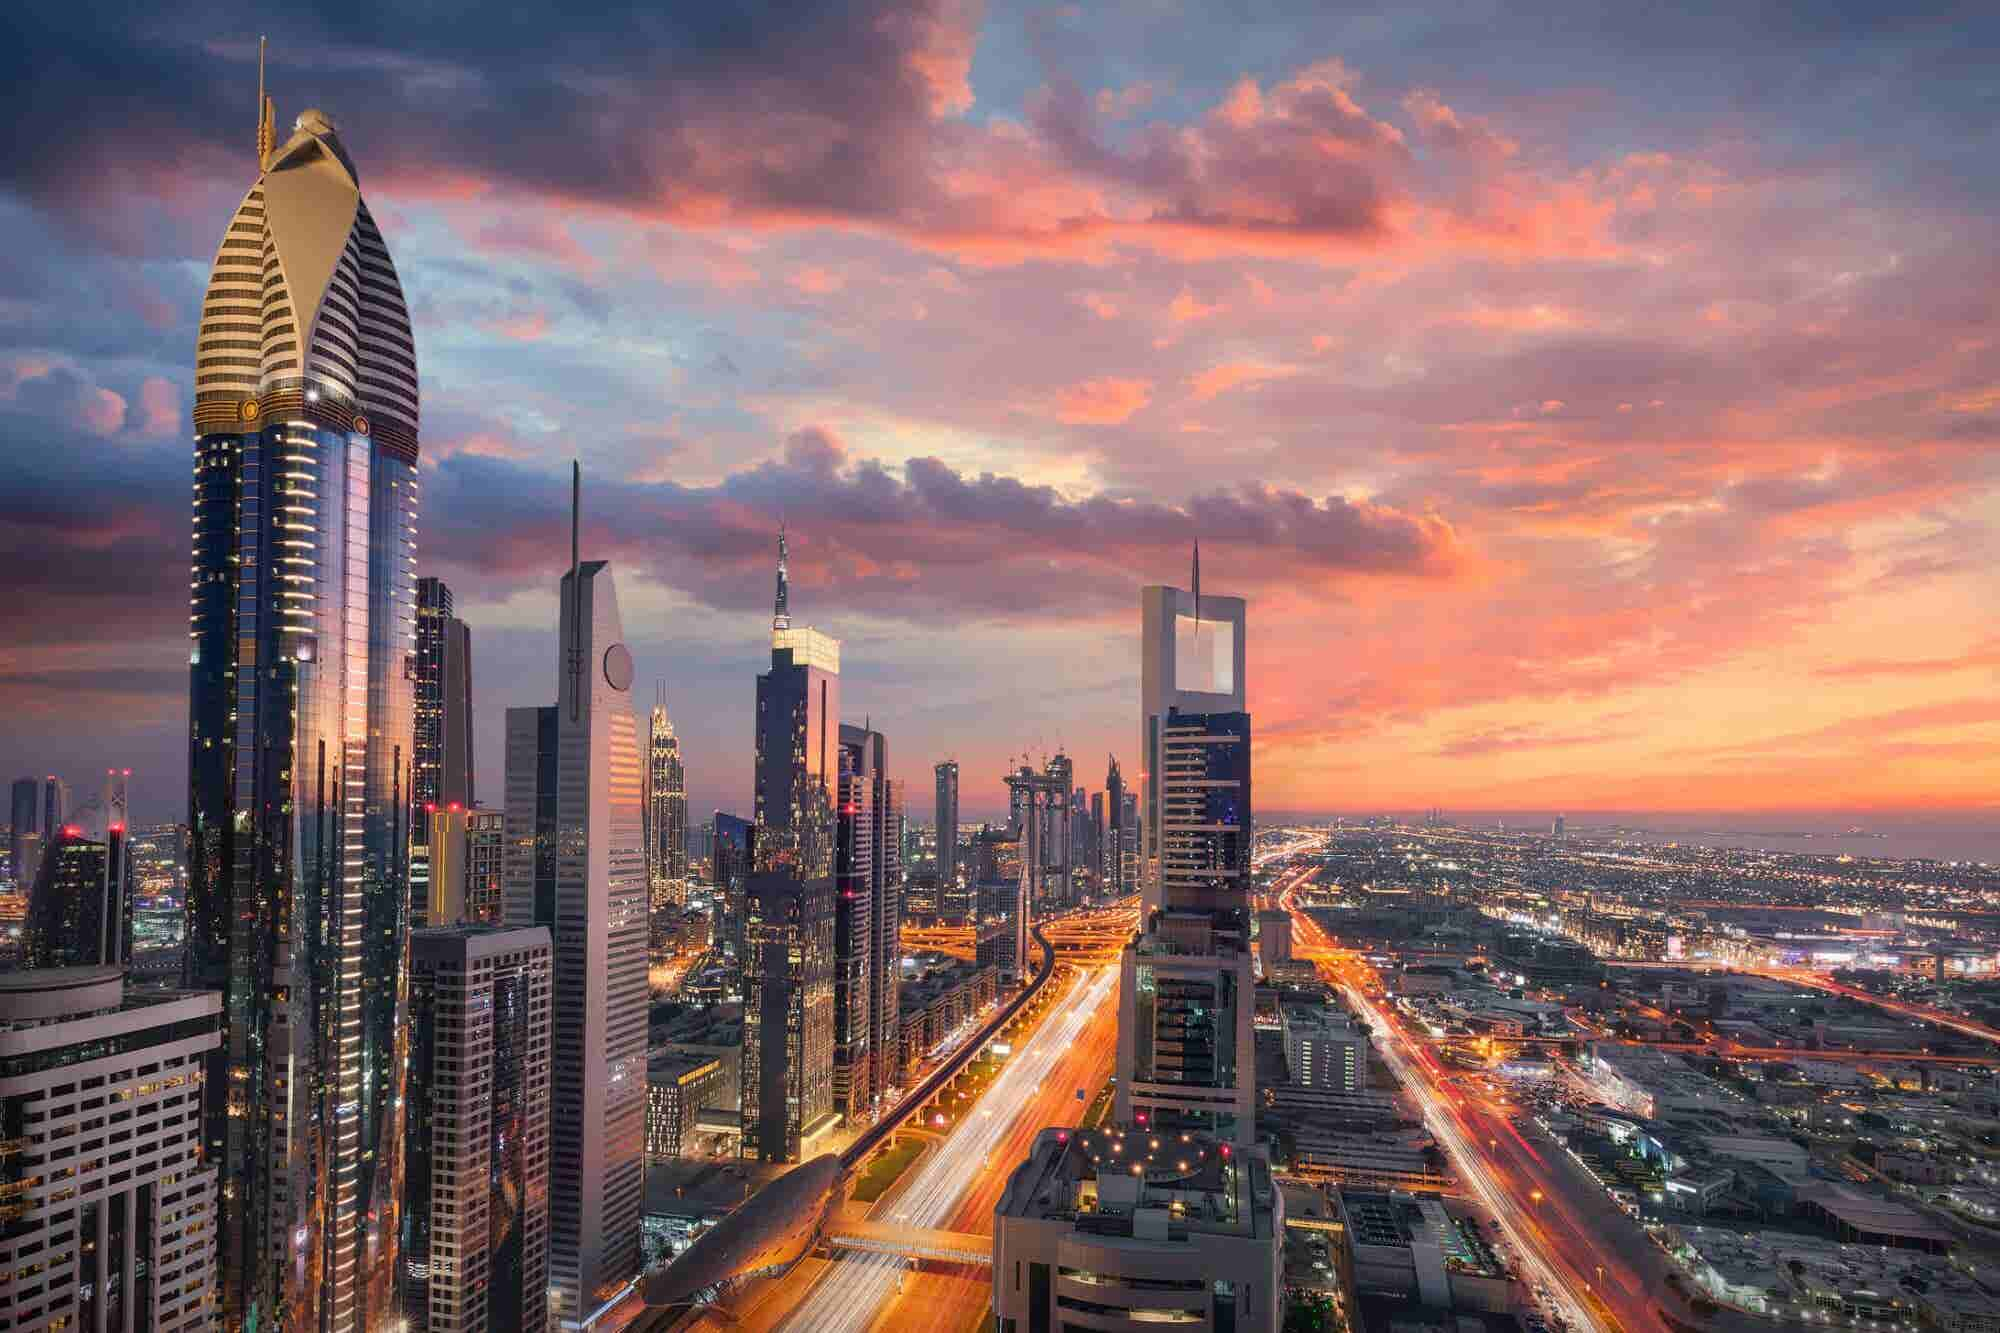 Dubai's University Free Zones Strategy To Power New Wave Of Student-Lead Innovation And Entrepreneurship In The Emirate